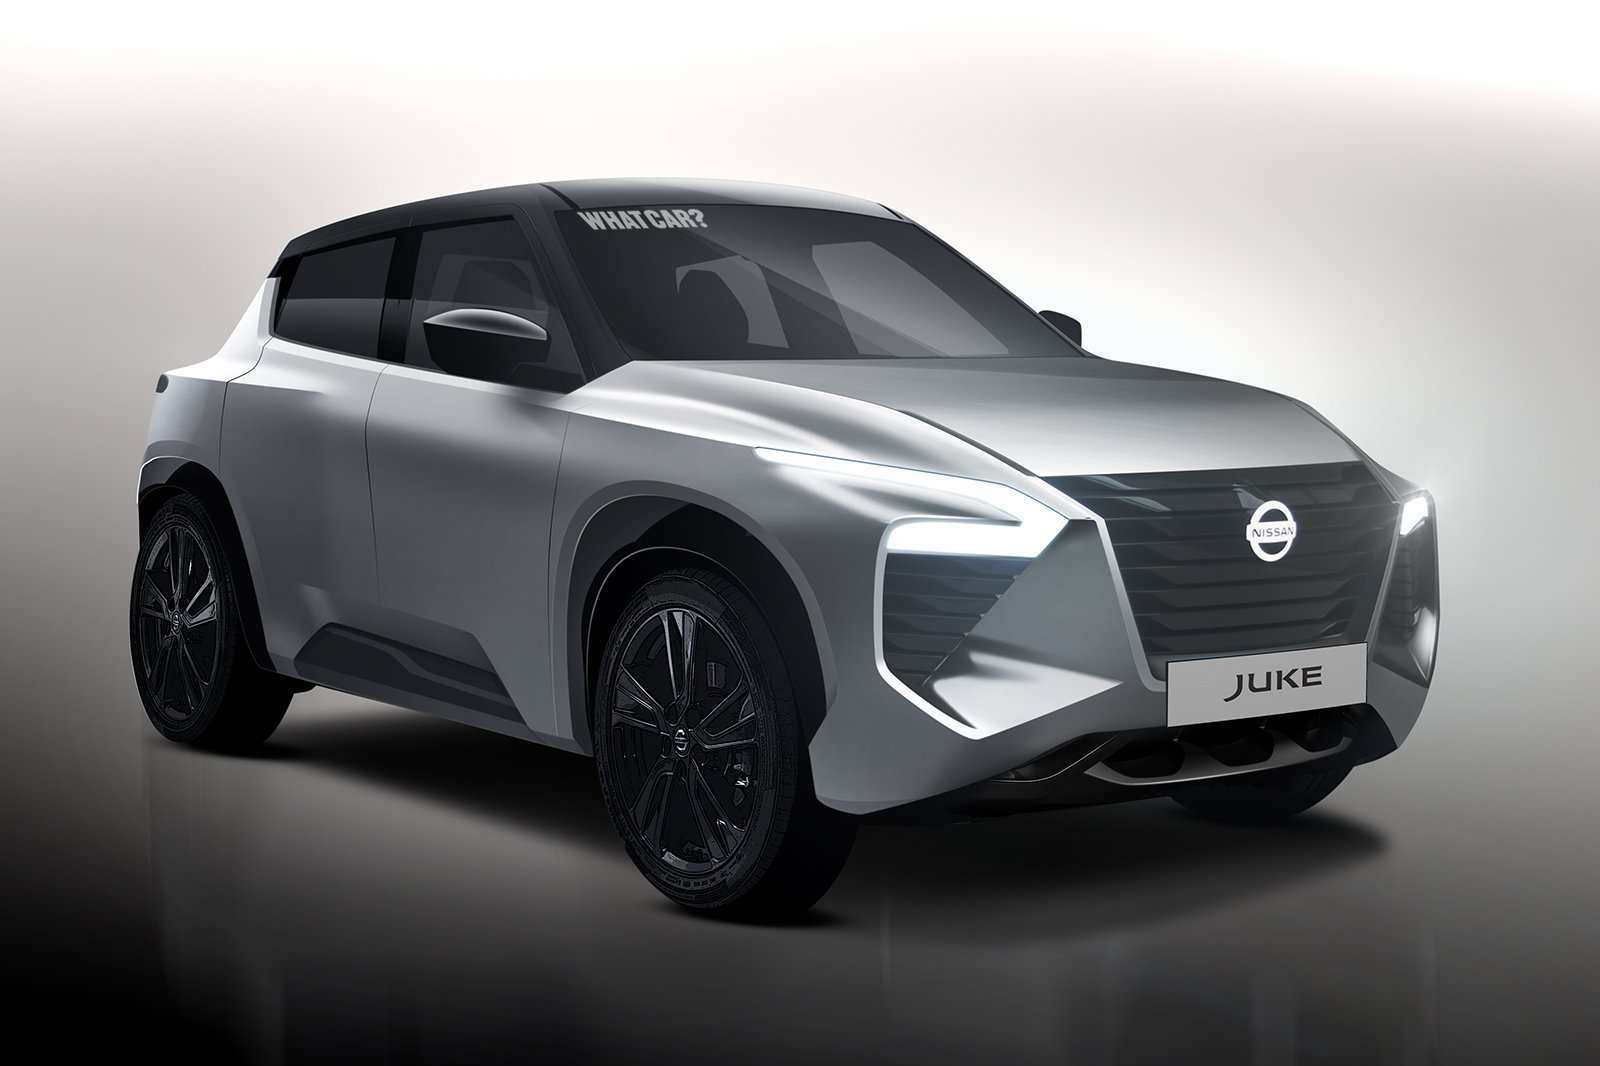 69 All New New 2019 Nissan Juke Review Concept Style by New 2019 Nissan Juke Review Concept